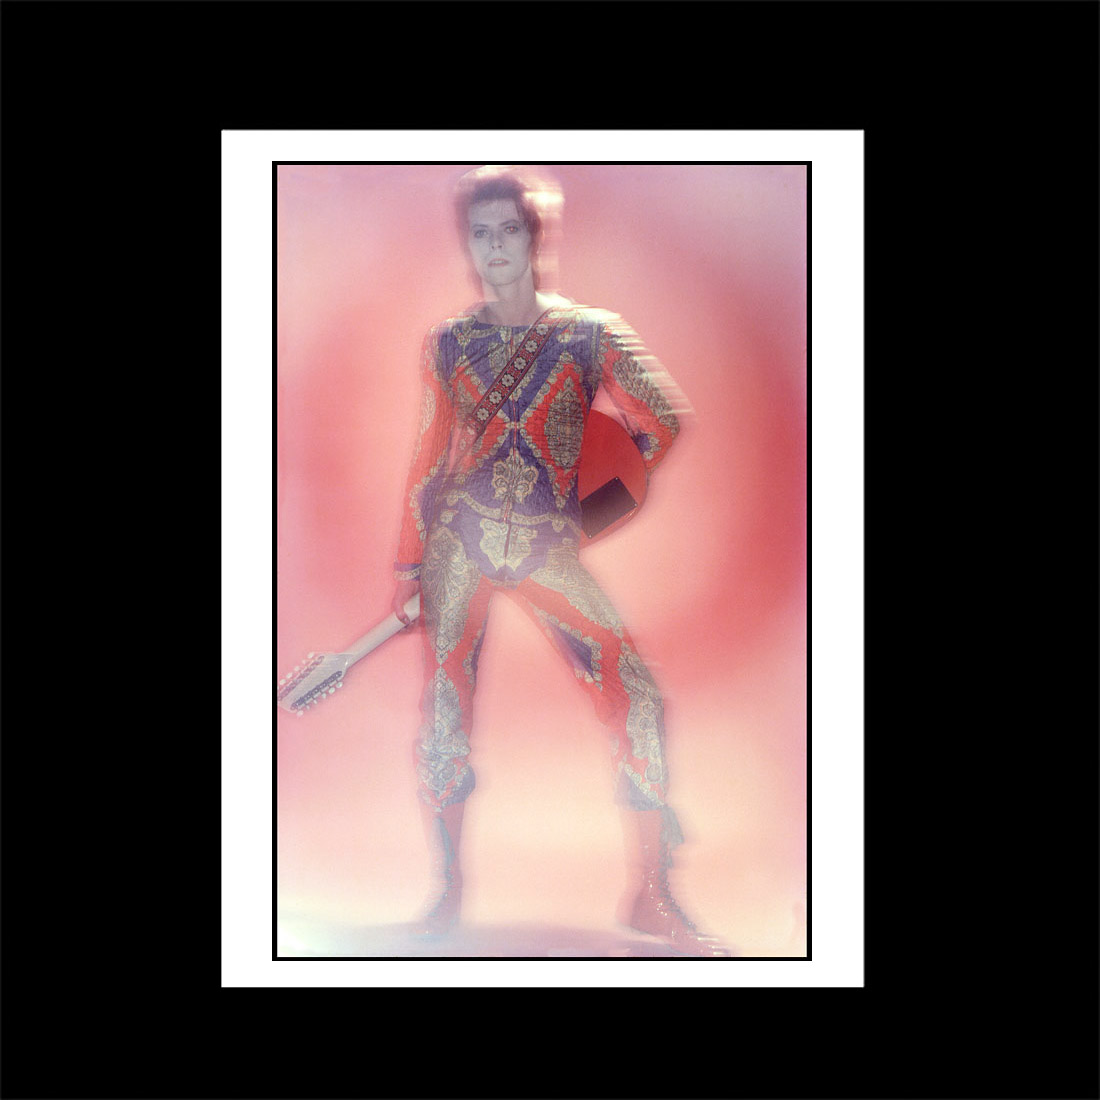 David Bowie Starman outfit print version 2